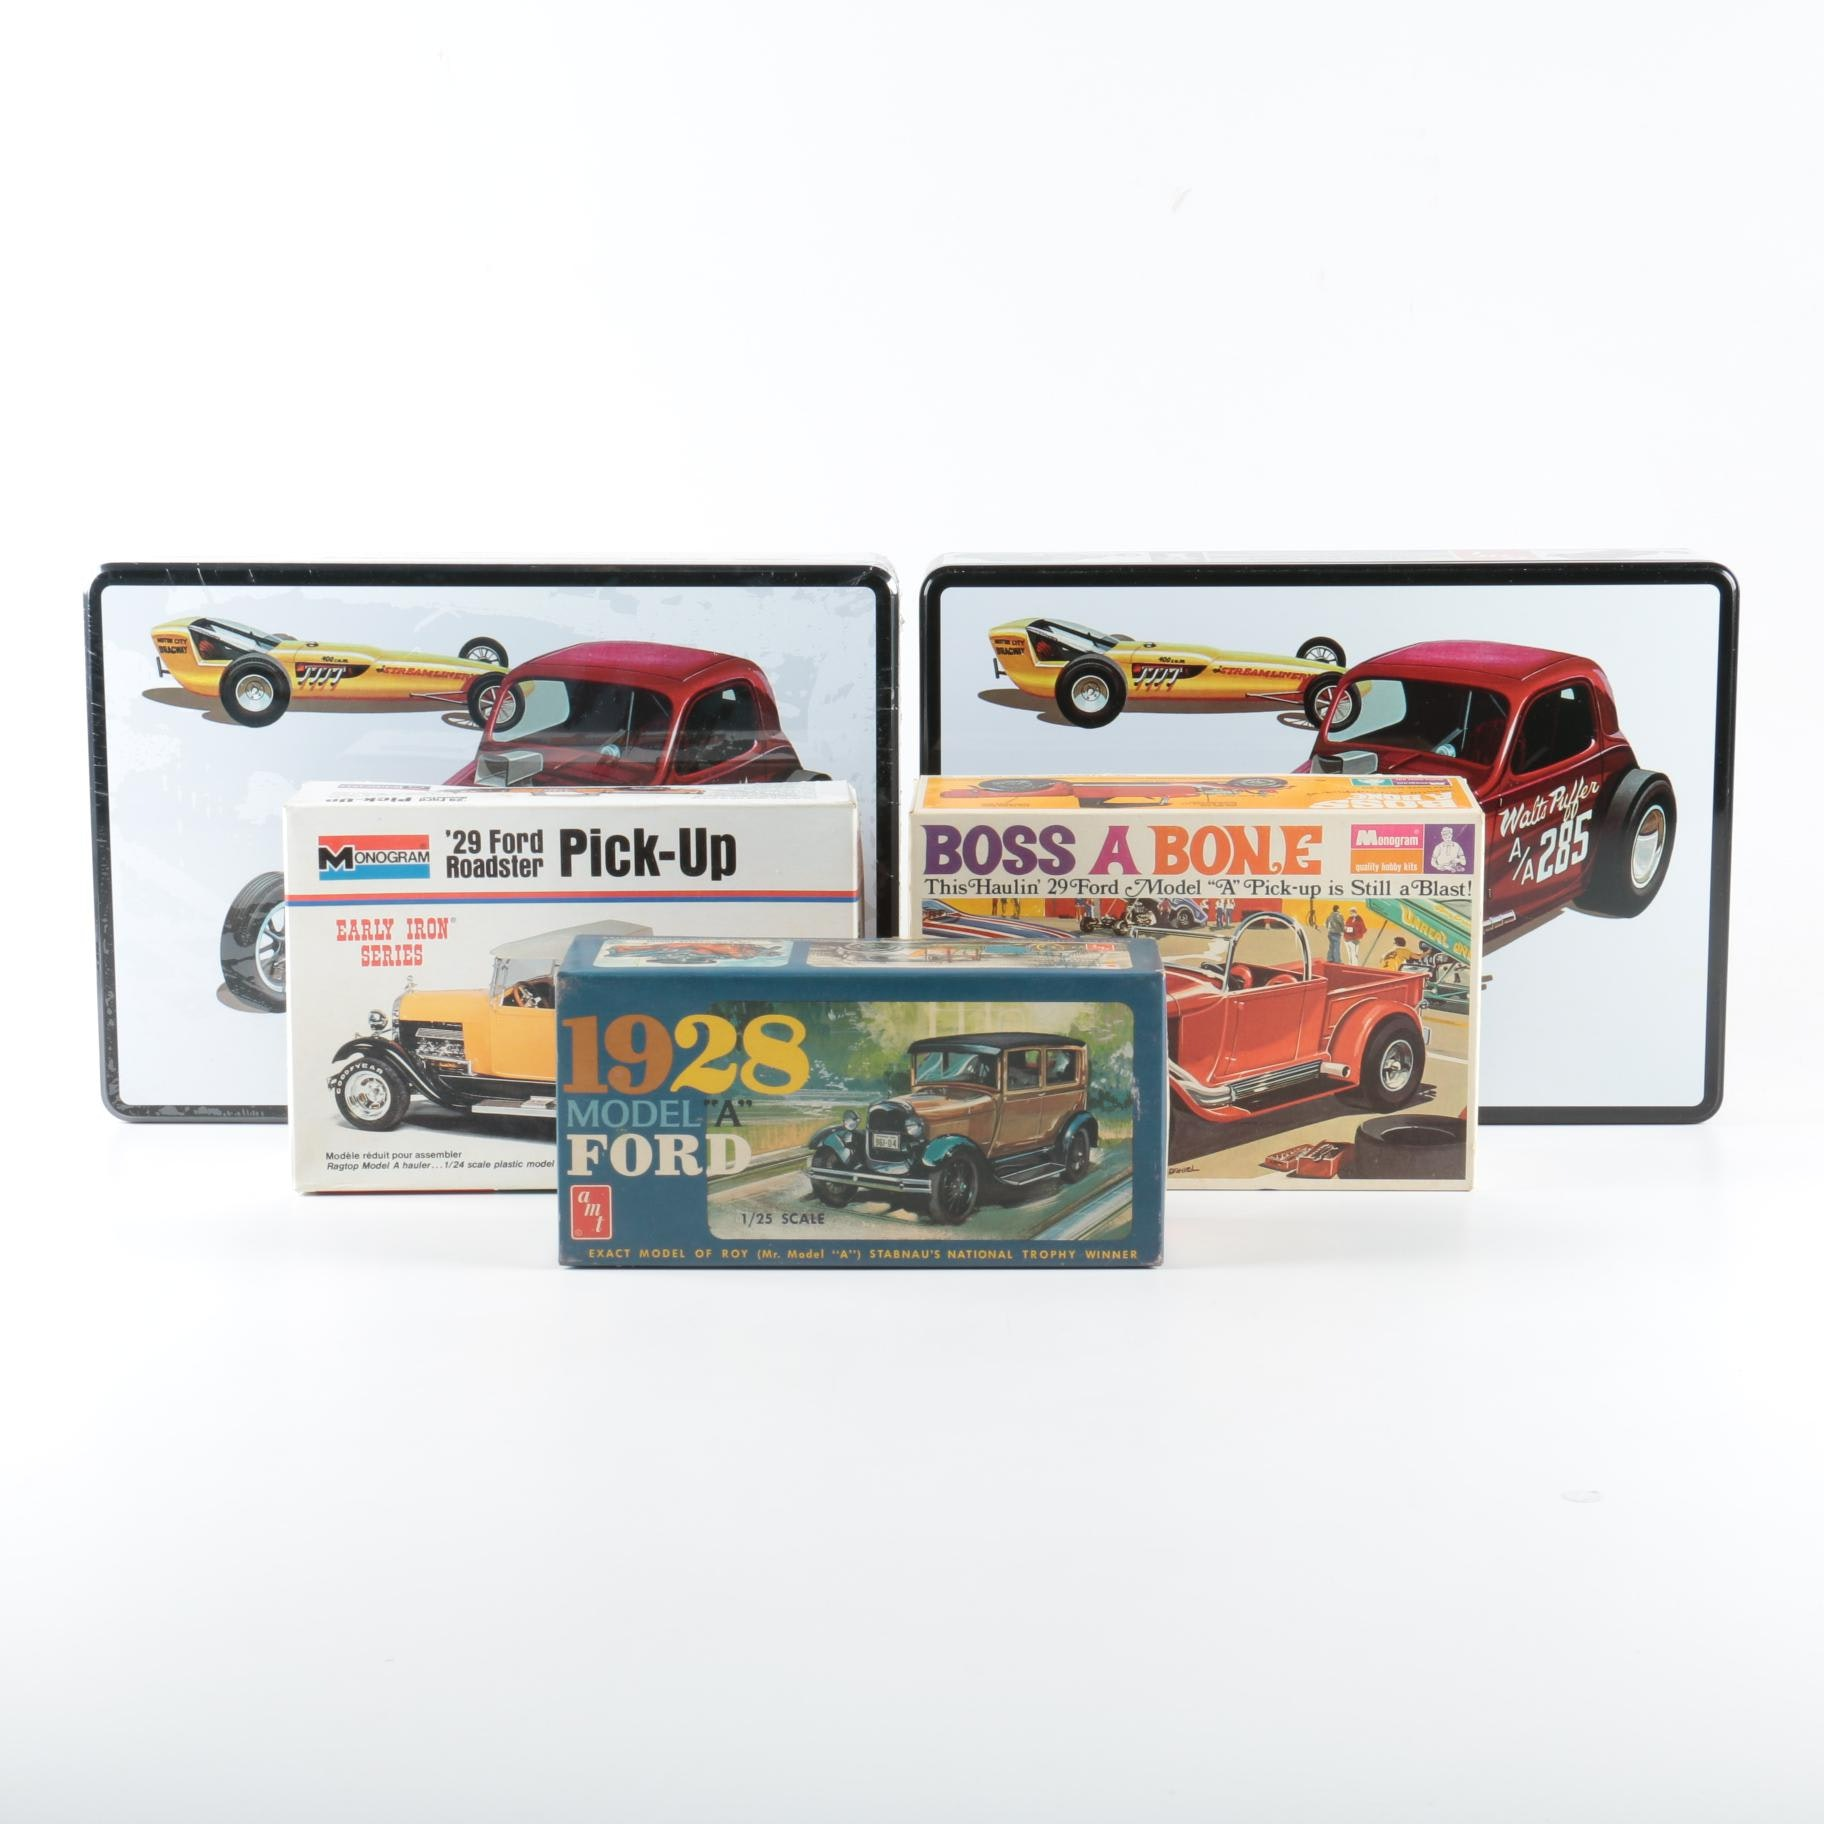 Vintage Roadster Model Car Kits